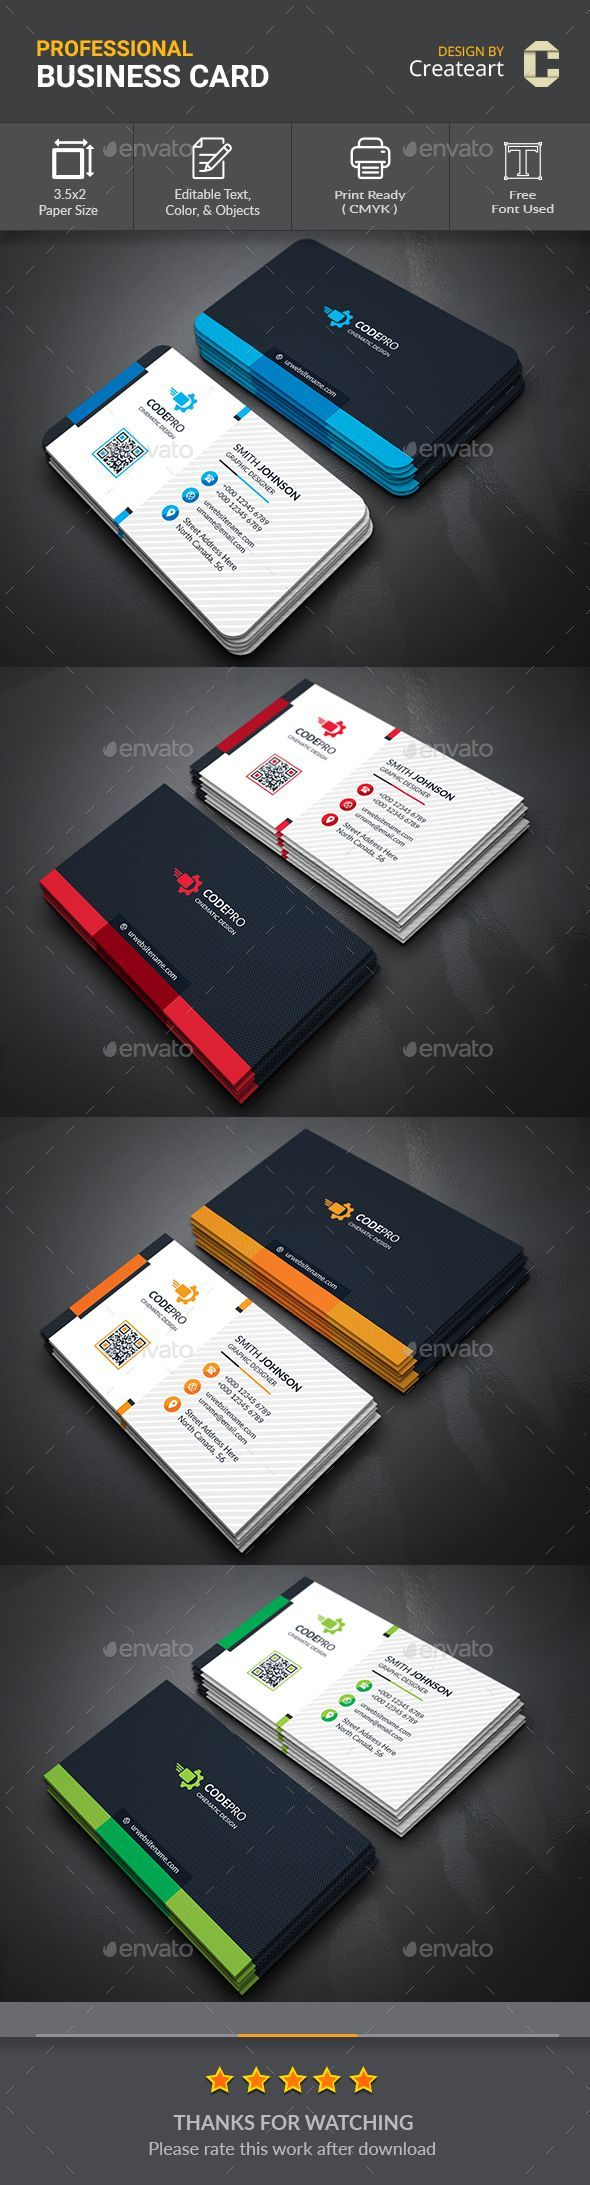 11966 best best business cards images on pinterest corporate business card business cards print templates bestbusinesscards magicingreecefo Choice Image